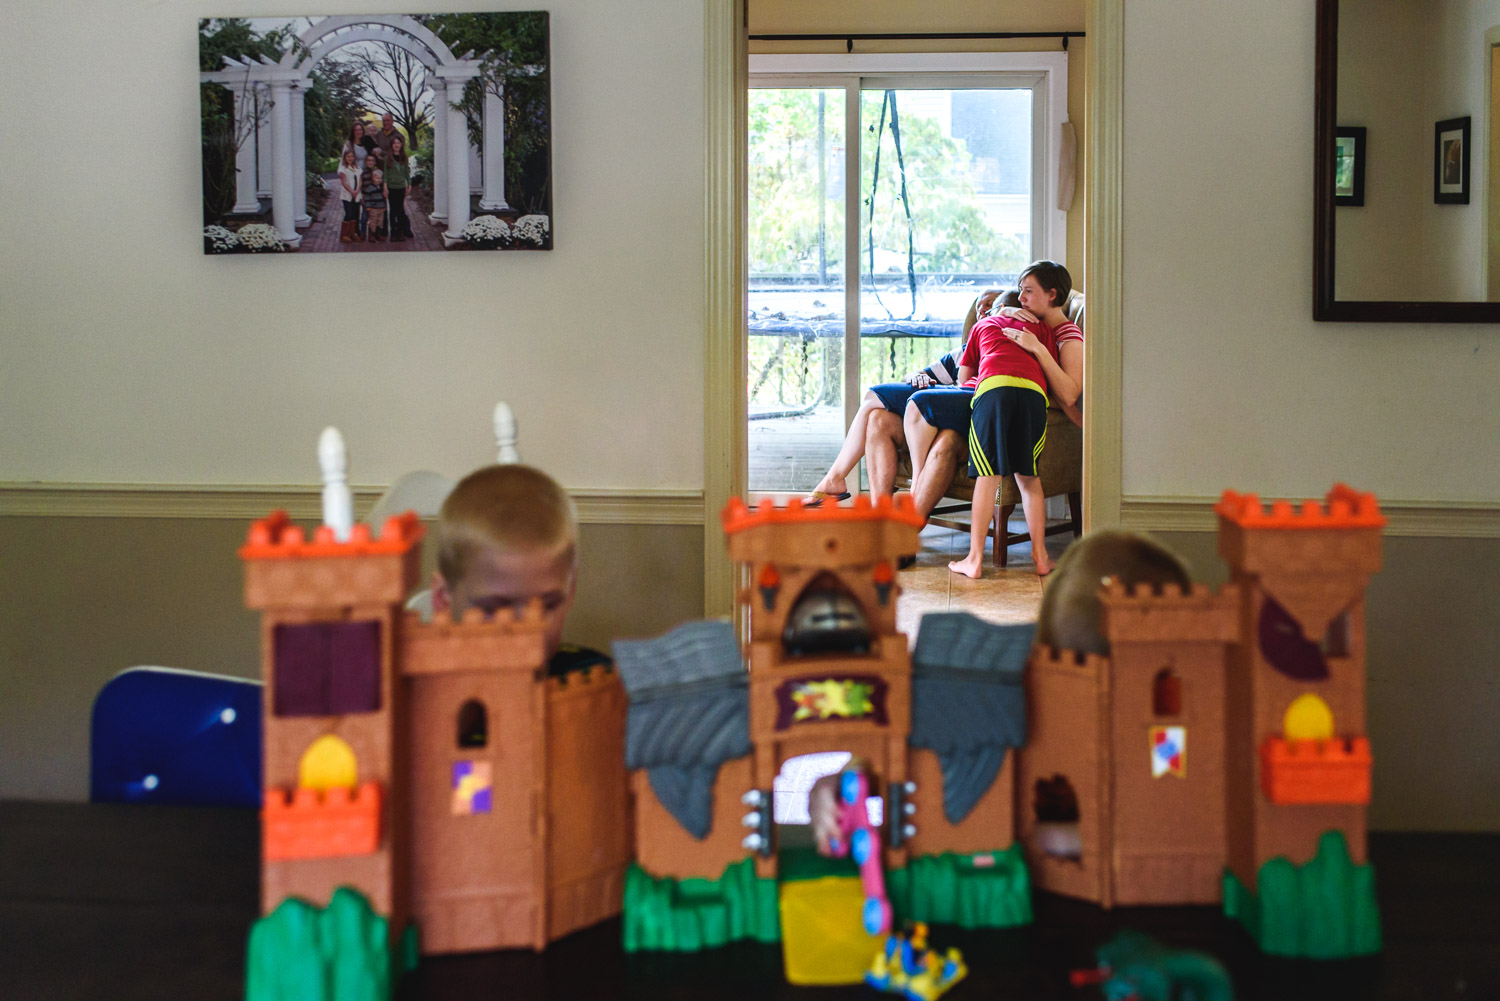 Kids playing with toy castle with mother in the background.